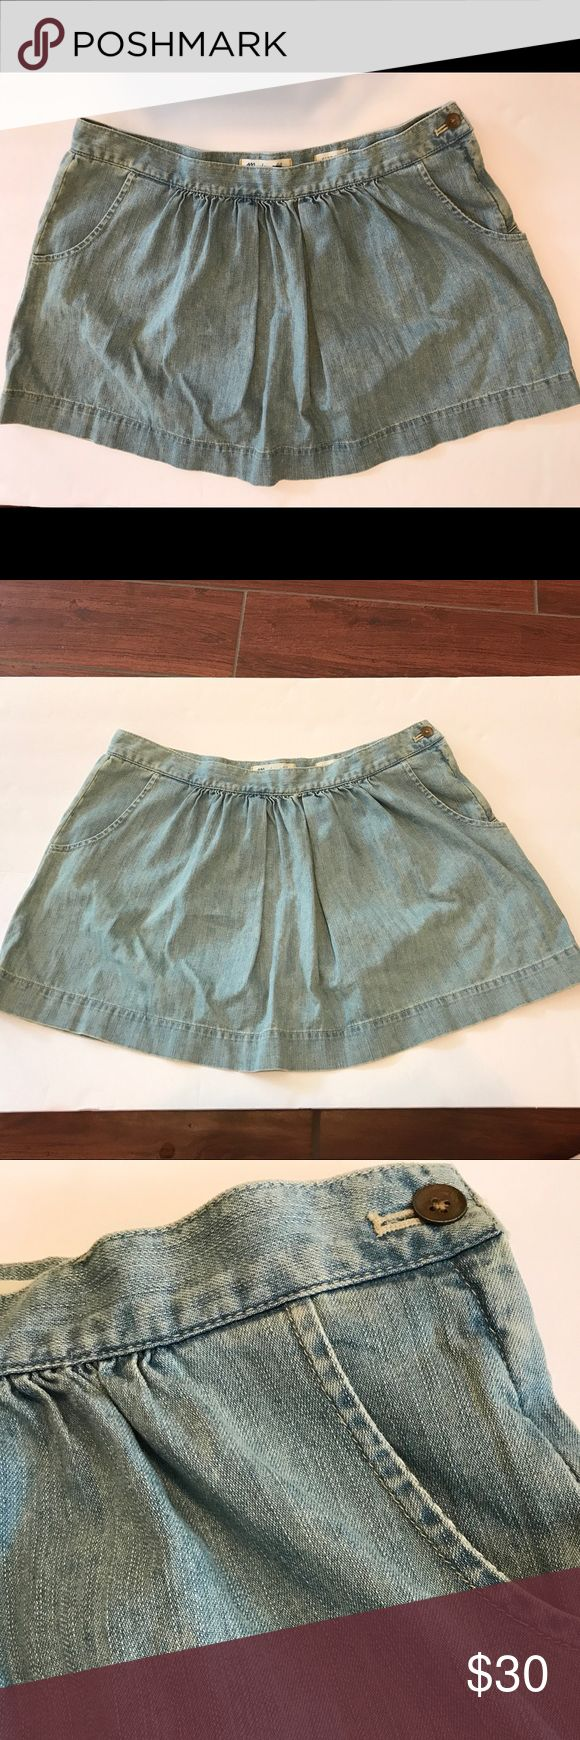 "New Madewell Denim Chambray Miniskirt with pockets Adorable Madewell Chambray miniskirt, new with tags! Original price tag is $40.00. 100% cotton and machine washable. Approximate measurements are: waist 33"", length 14.5"". Has zipper and button closure on the side of the skirt. Madewell Skirts Mini"